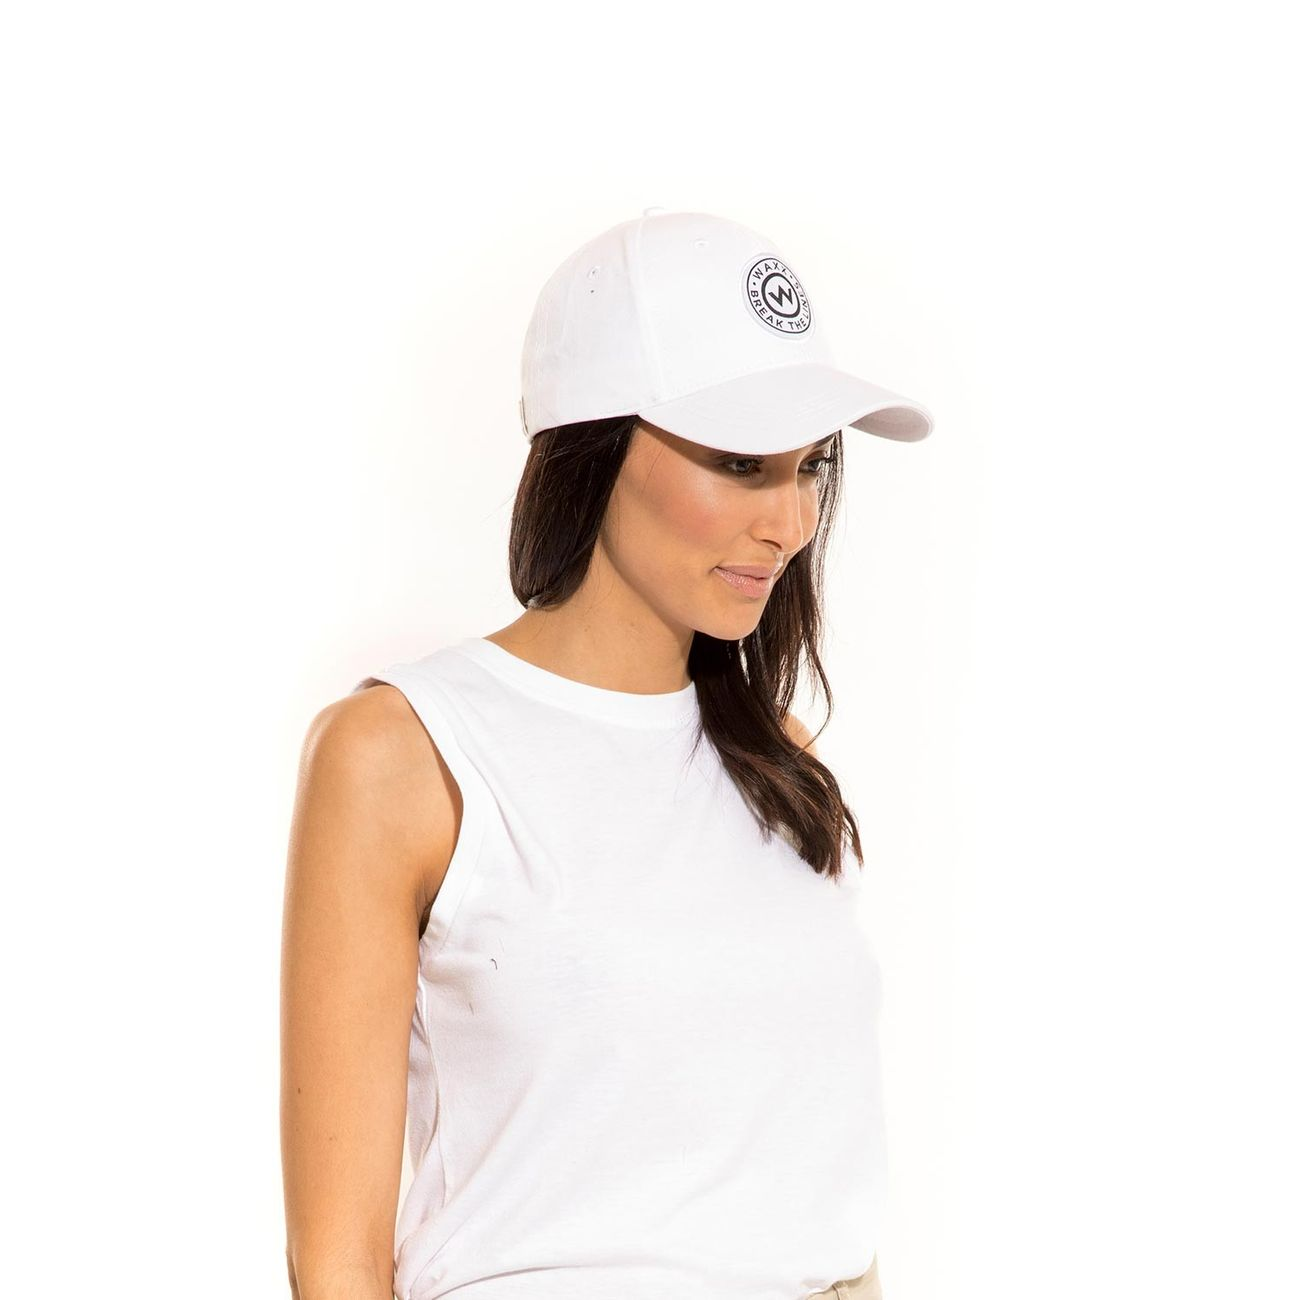 ModeLifestyle ModeLifestyle Waxx Casquette Casquette One Adulte Adulte One ModeLifestyle Waxx kwn0OP